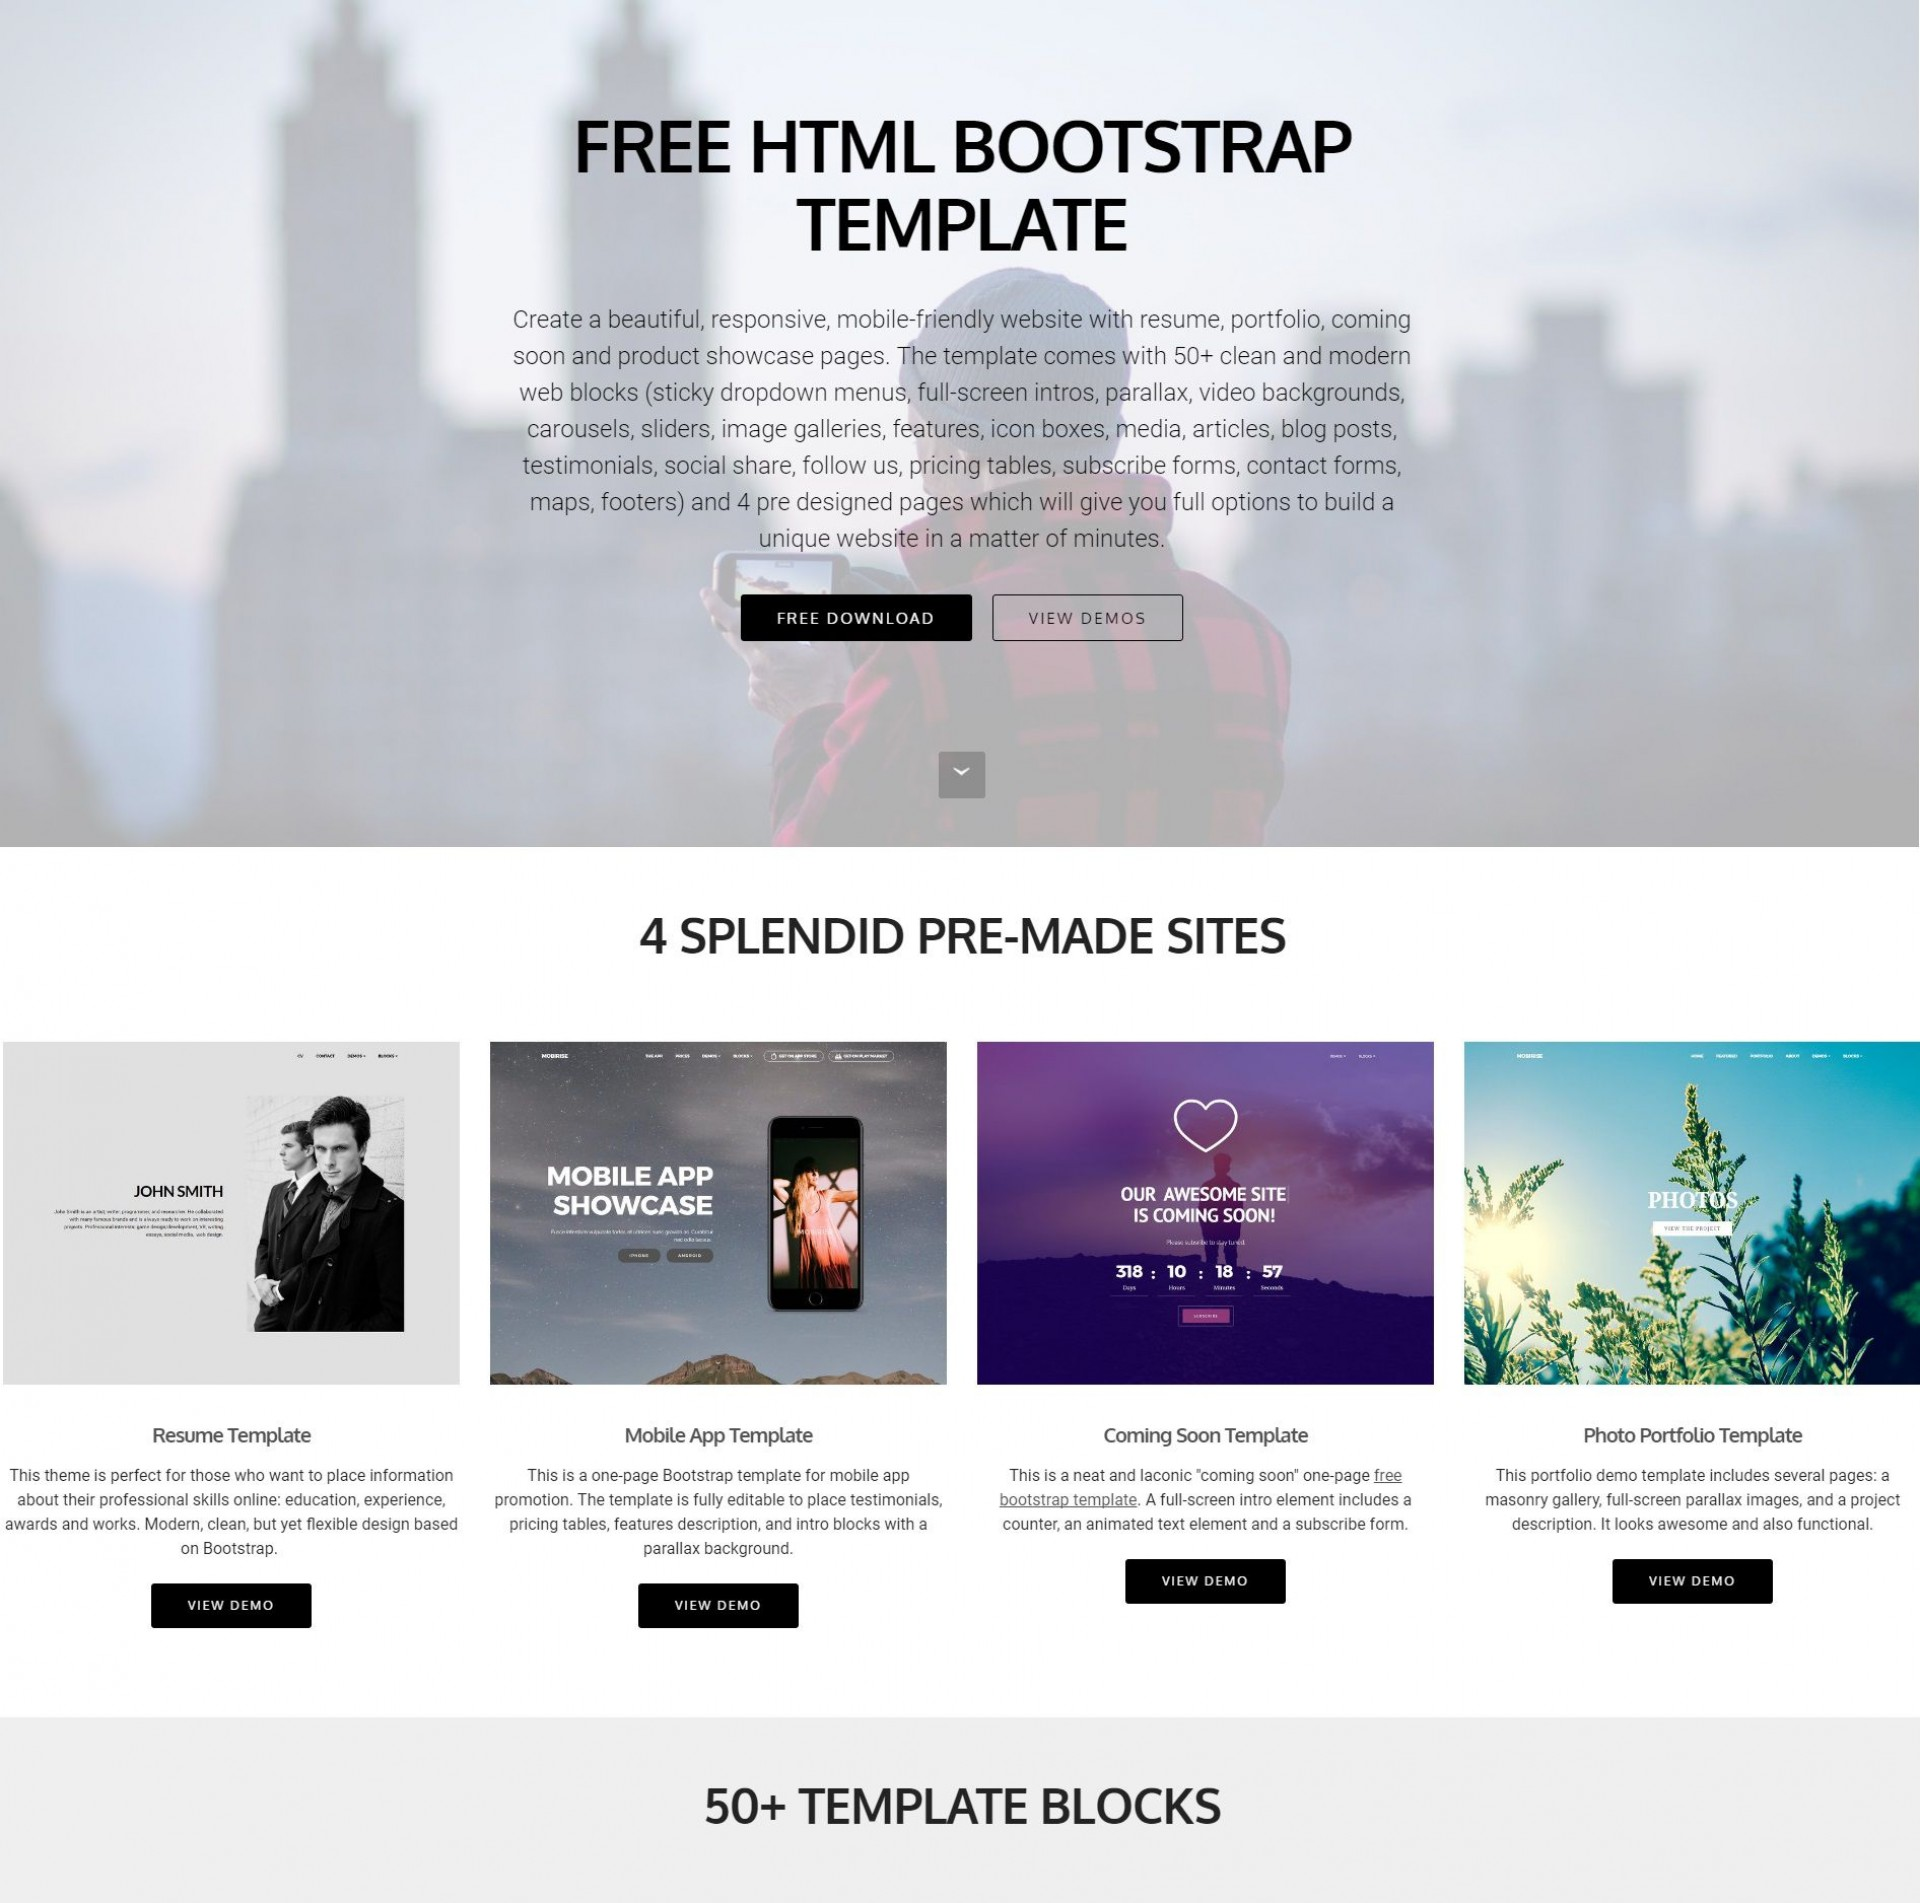 008 Sensational Website Template Free Download Concept  Online Shopping Colorlib New Wordpres Html5 For Busines1920